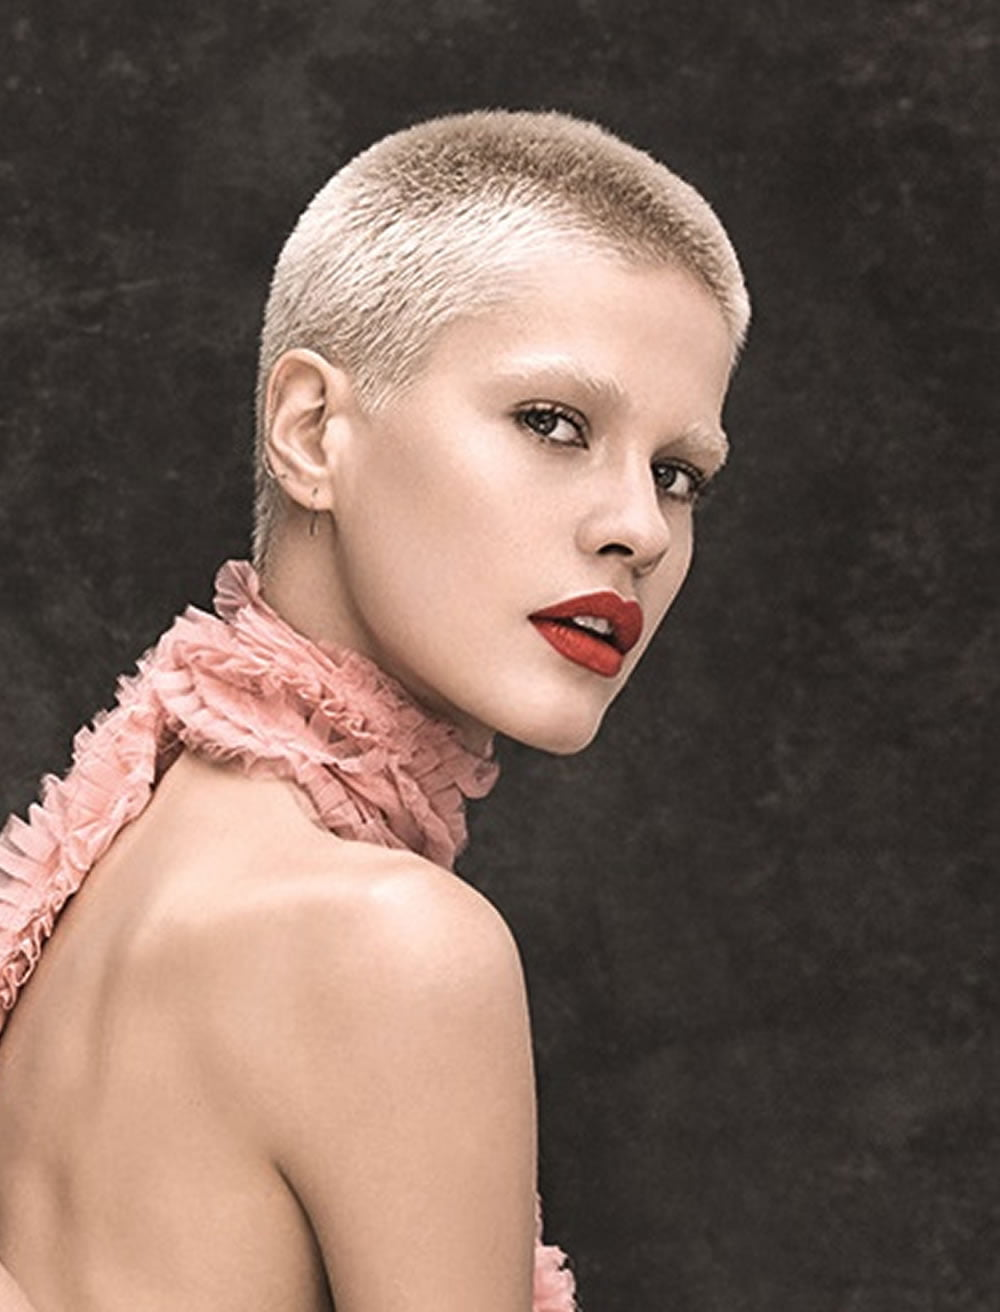 Very Short Pixie Haircut Tutorial & Images for Glorious Women 2019-2020 - HAIRSTYLES